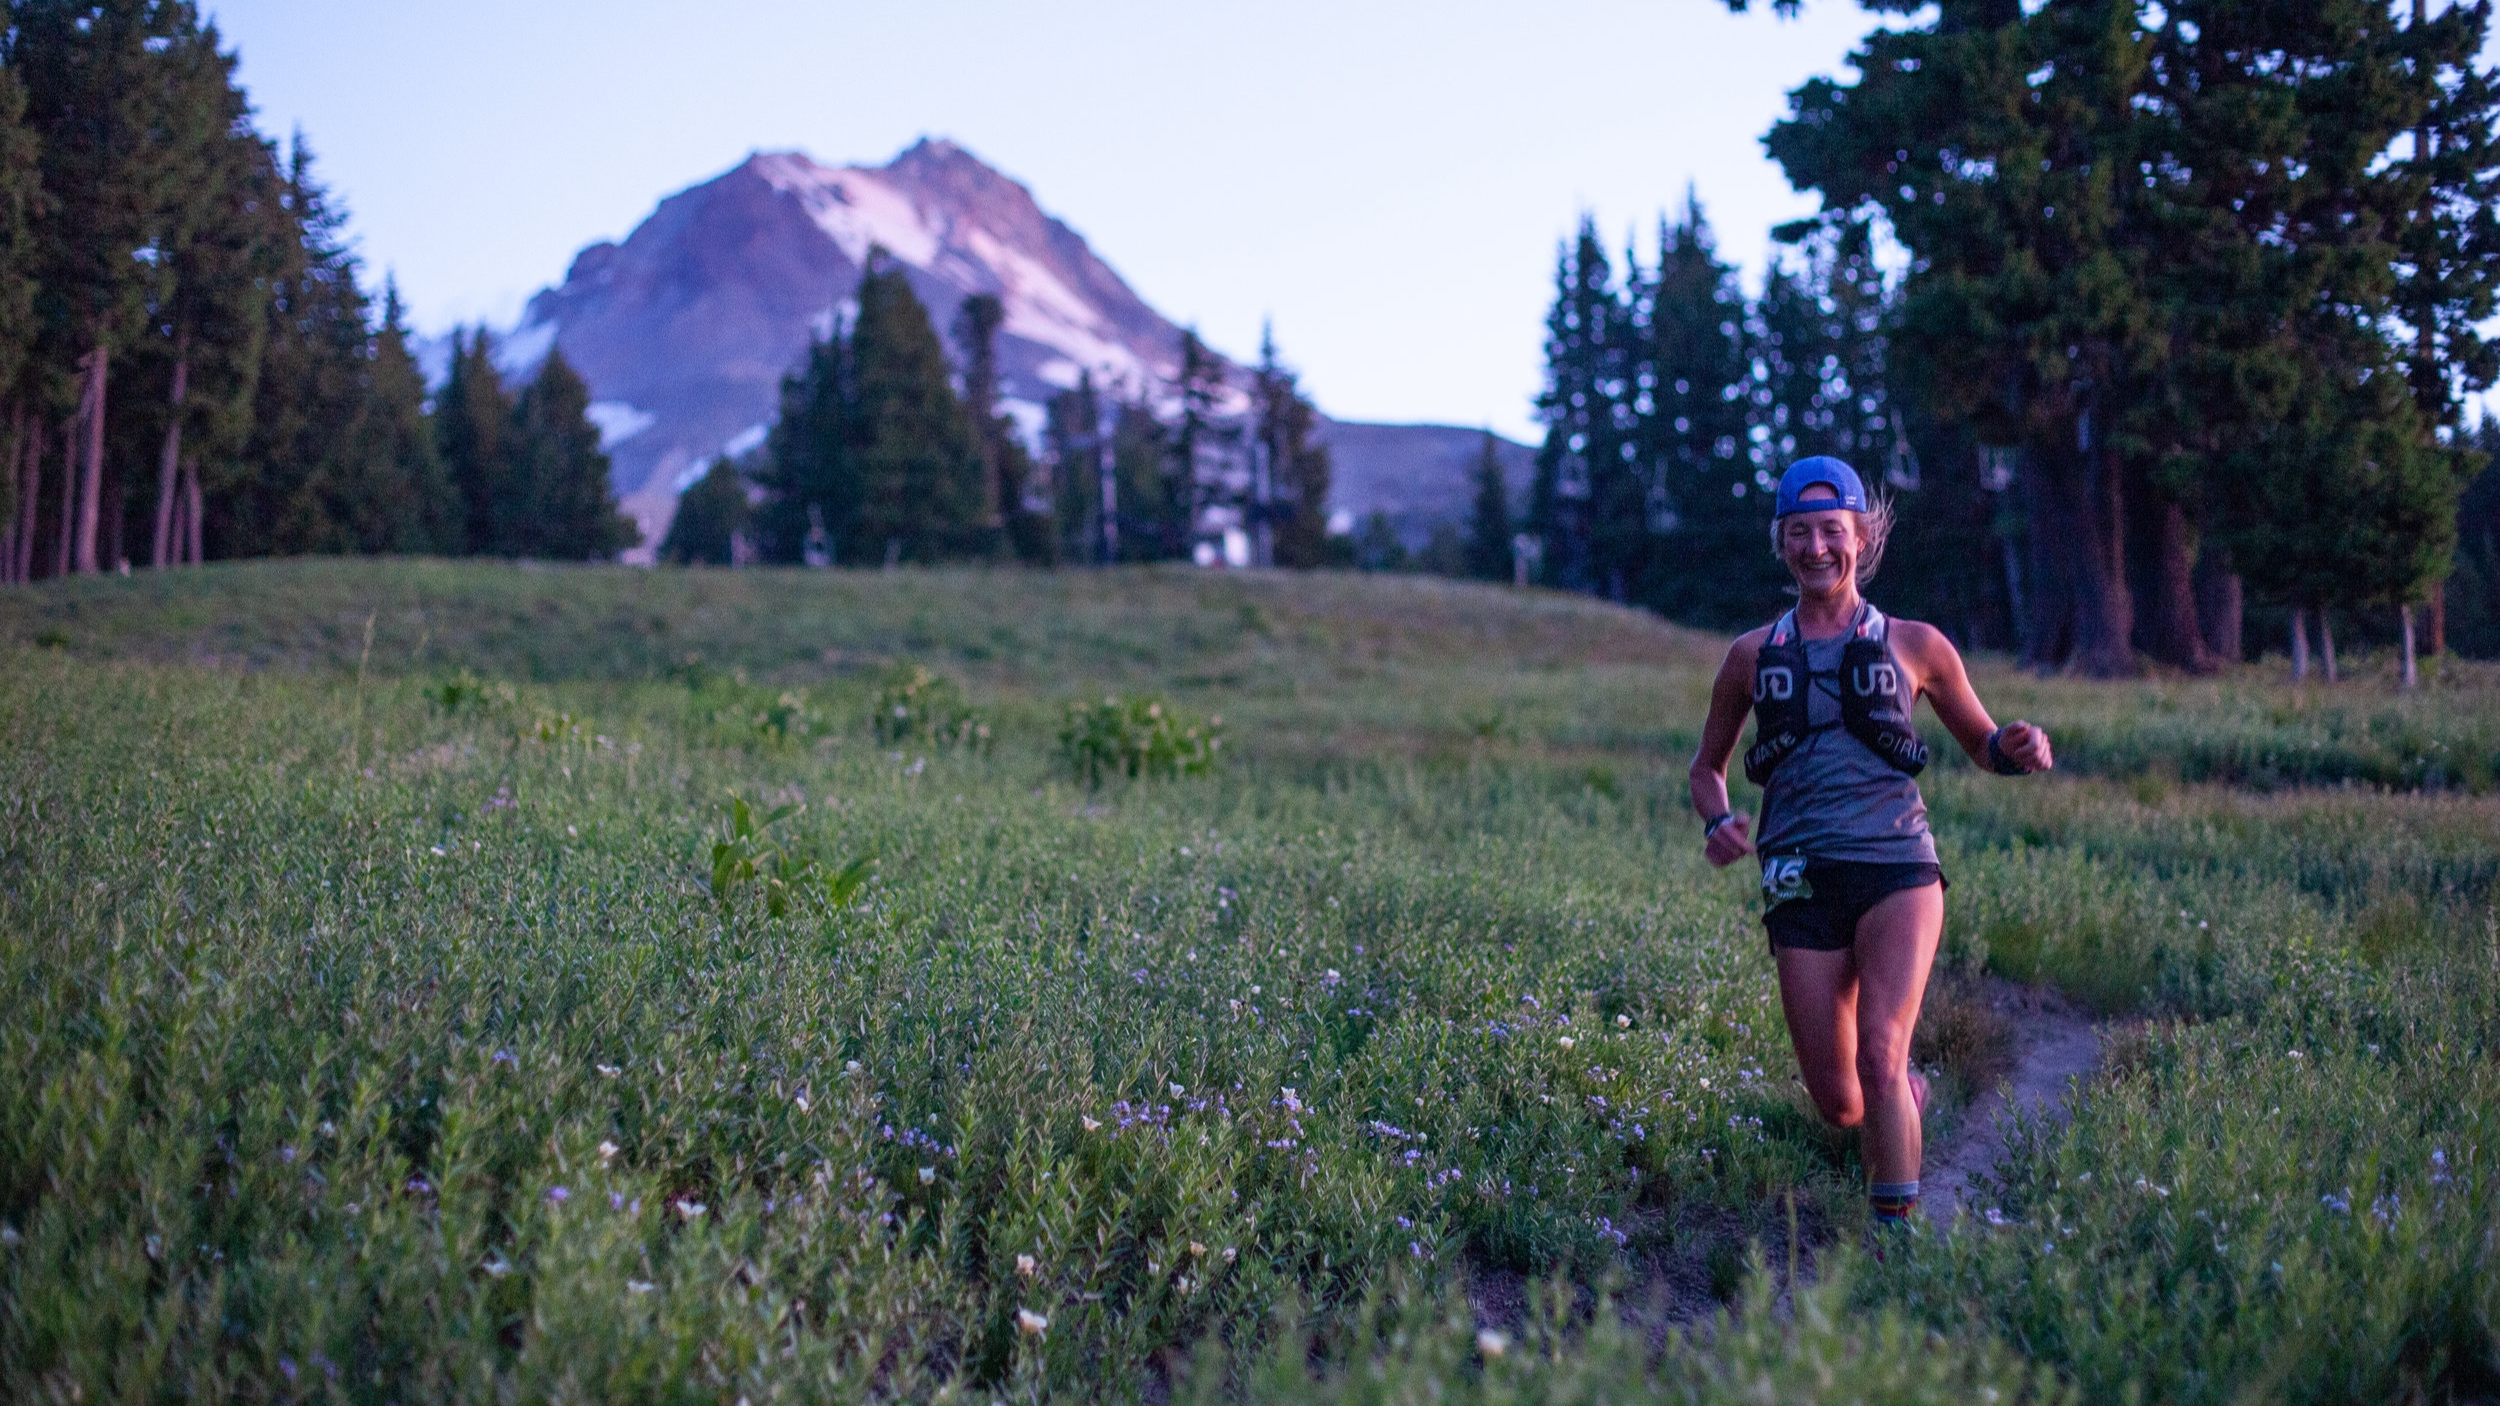 Wy'east howl 100K - A tour of Mt. Hood and surrounding ridgelines!July 25, 2020